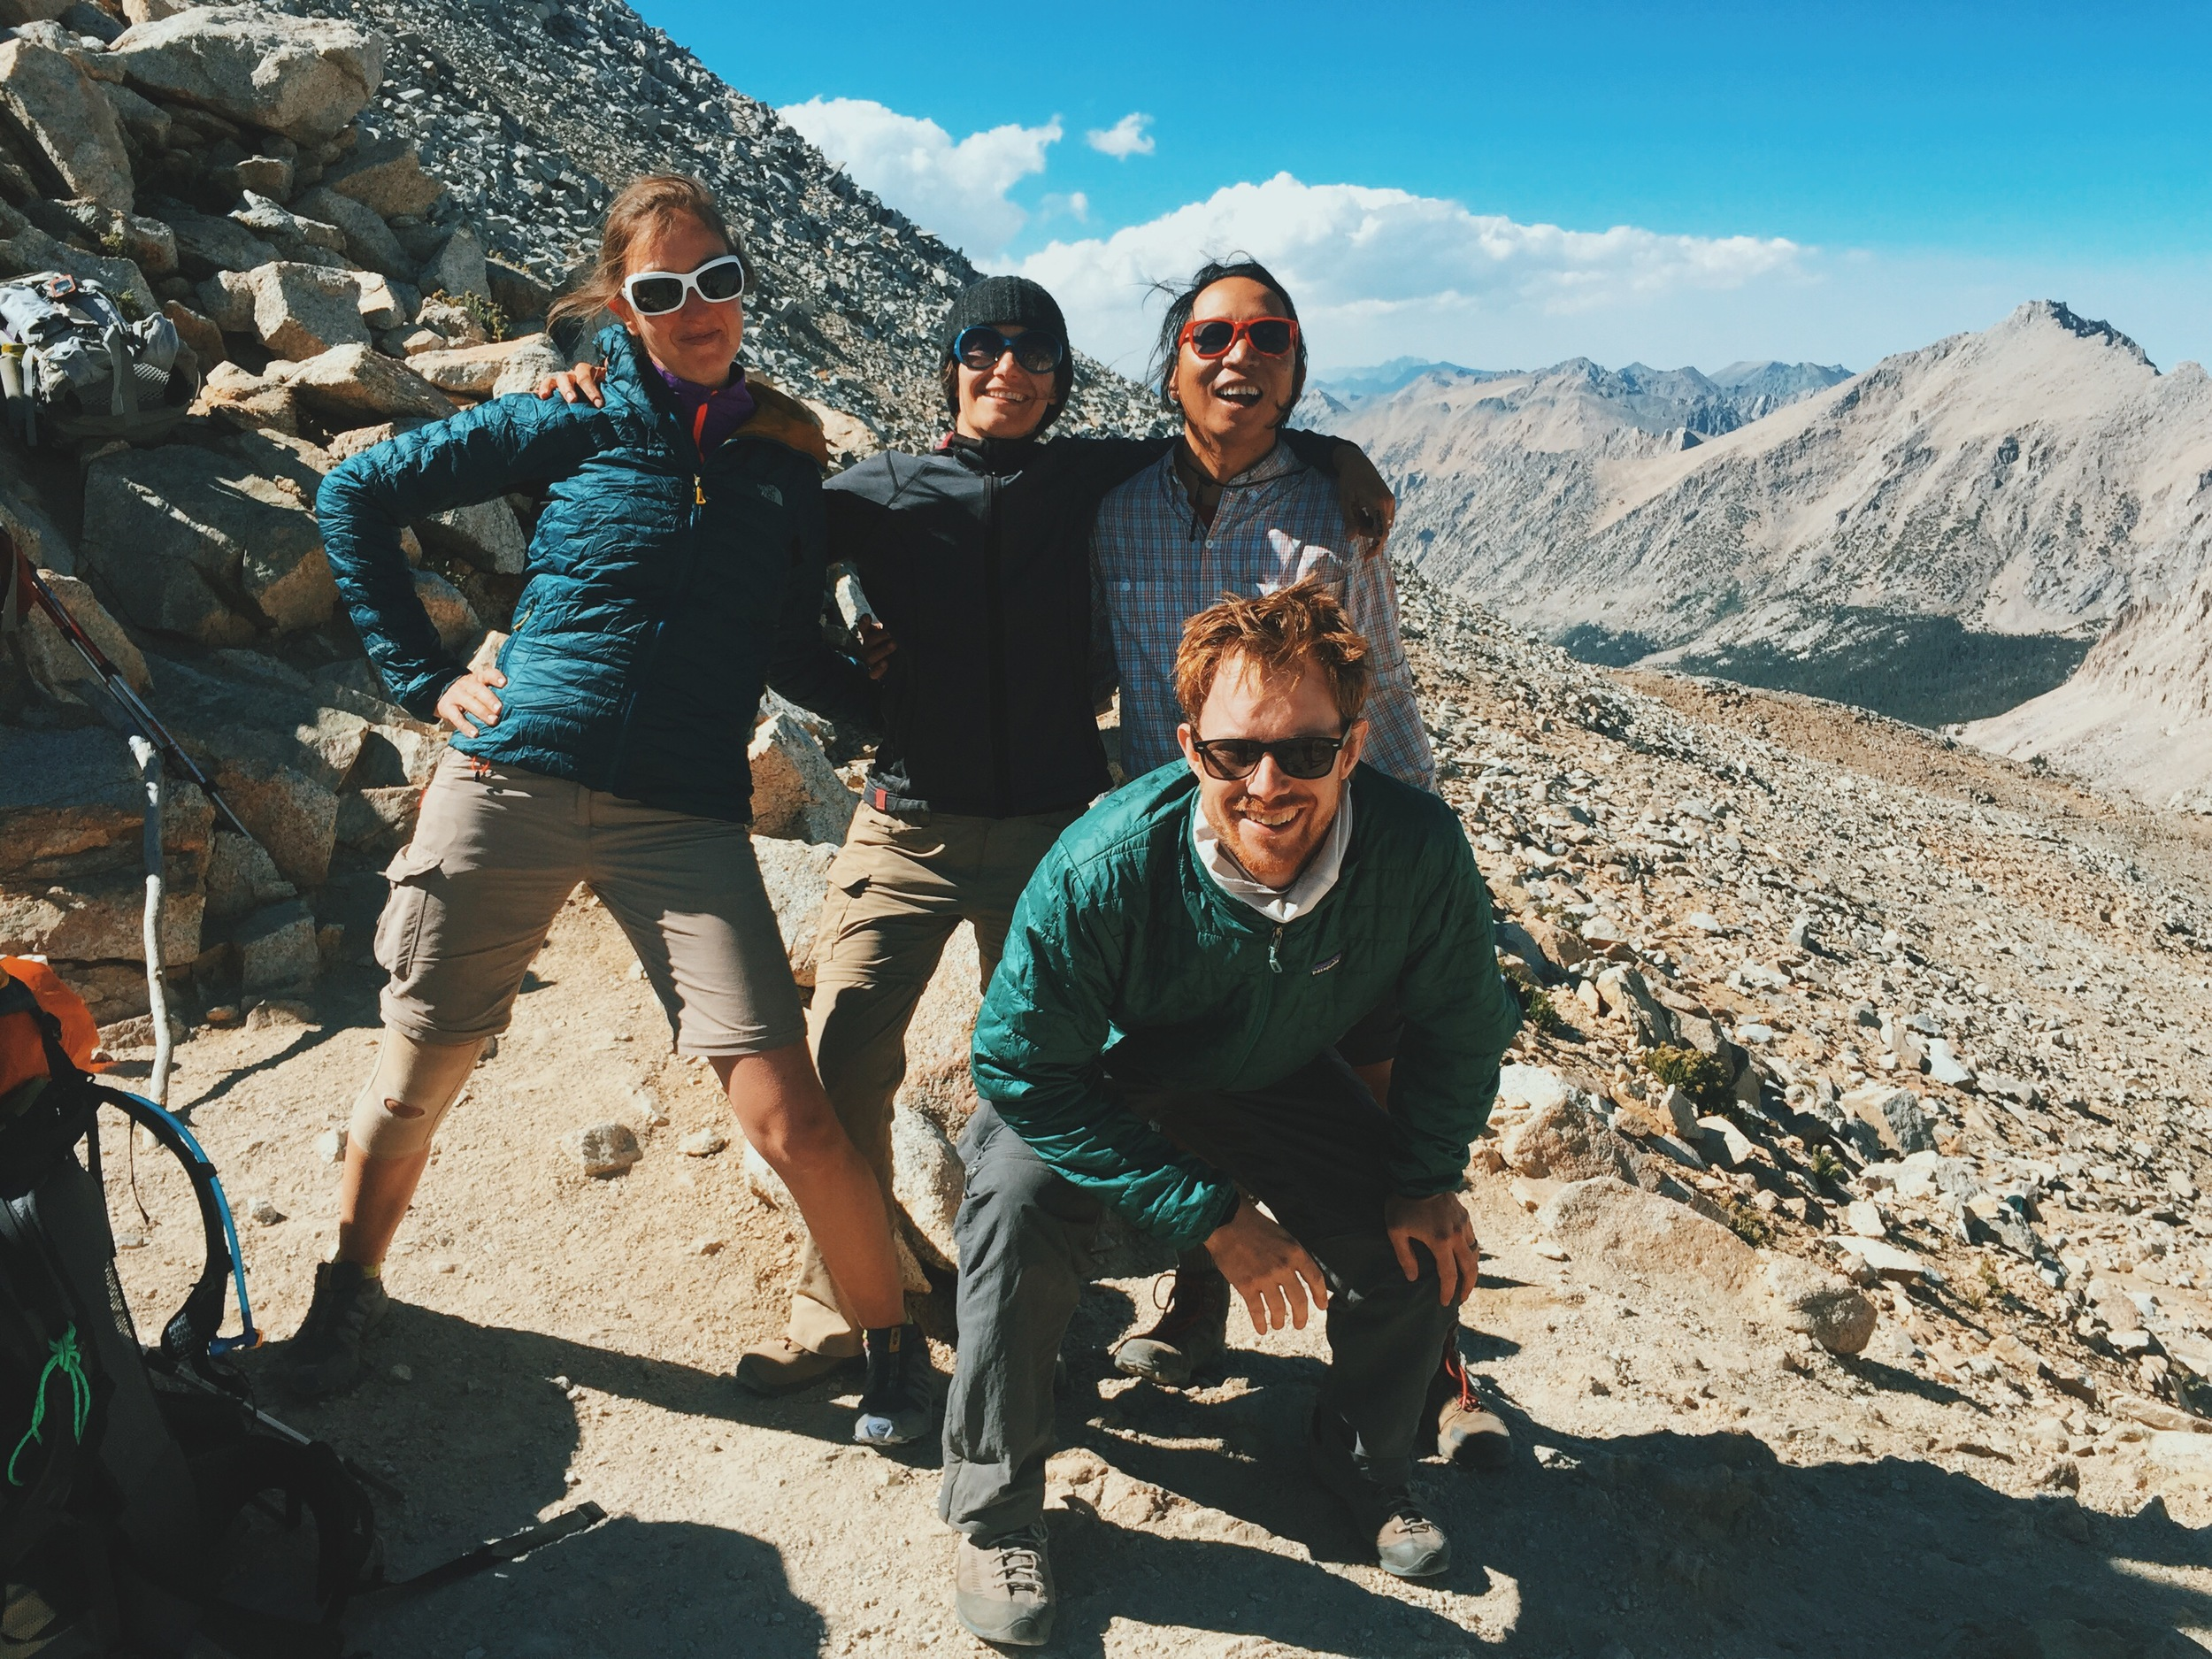 We took Forester Pass slow and steady and were ecstatic to have made it with plenty of energy left.